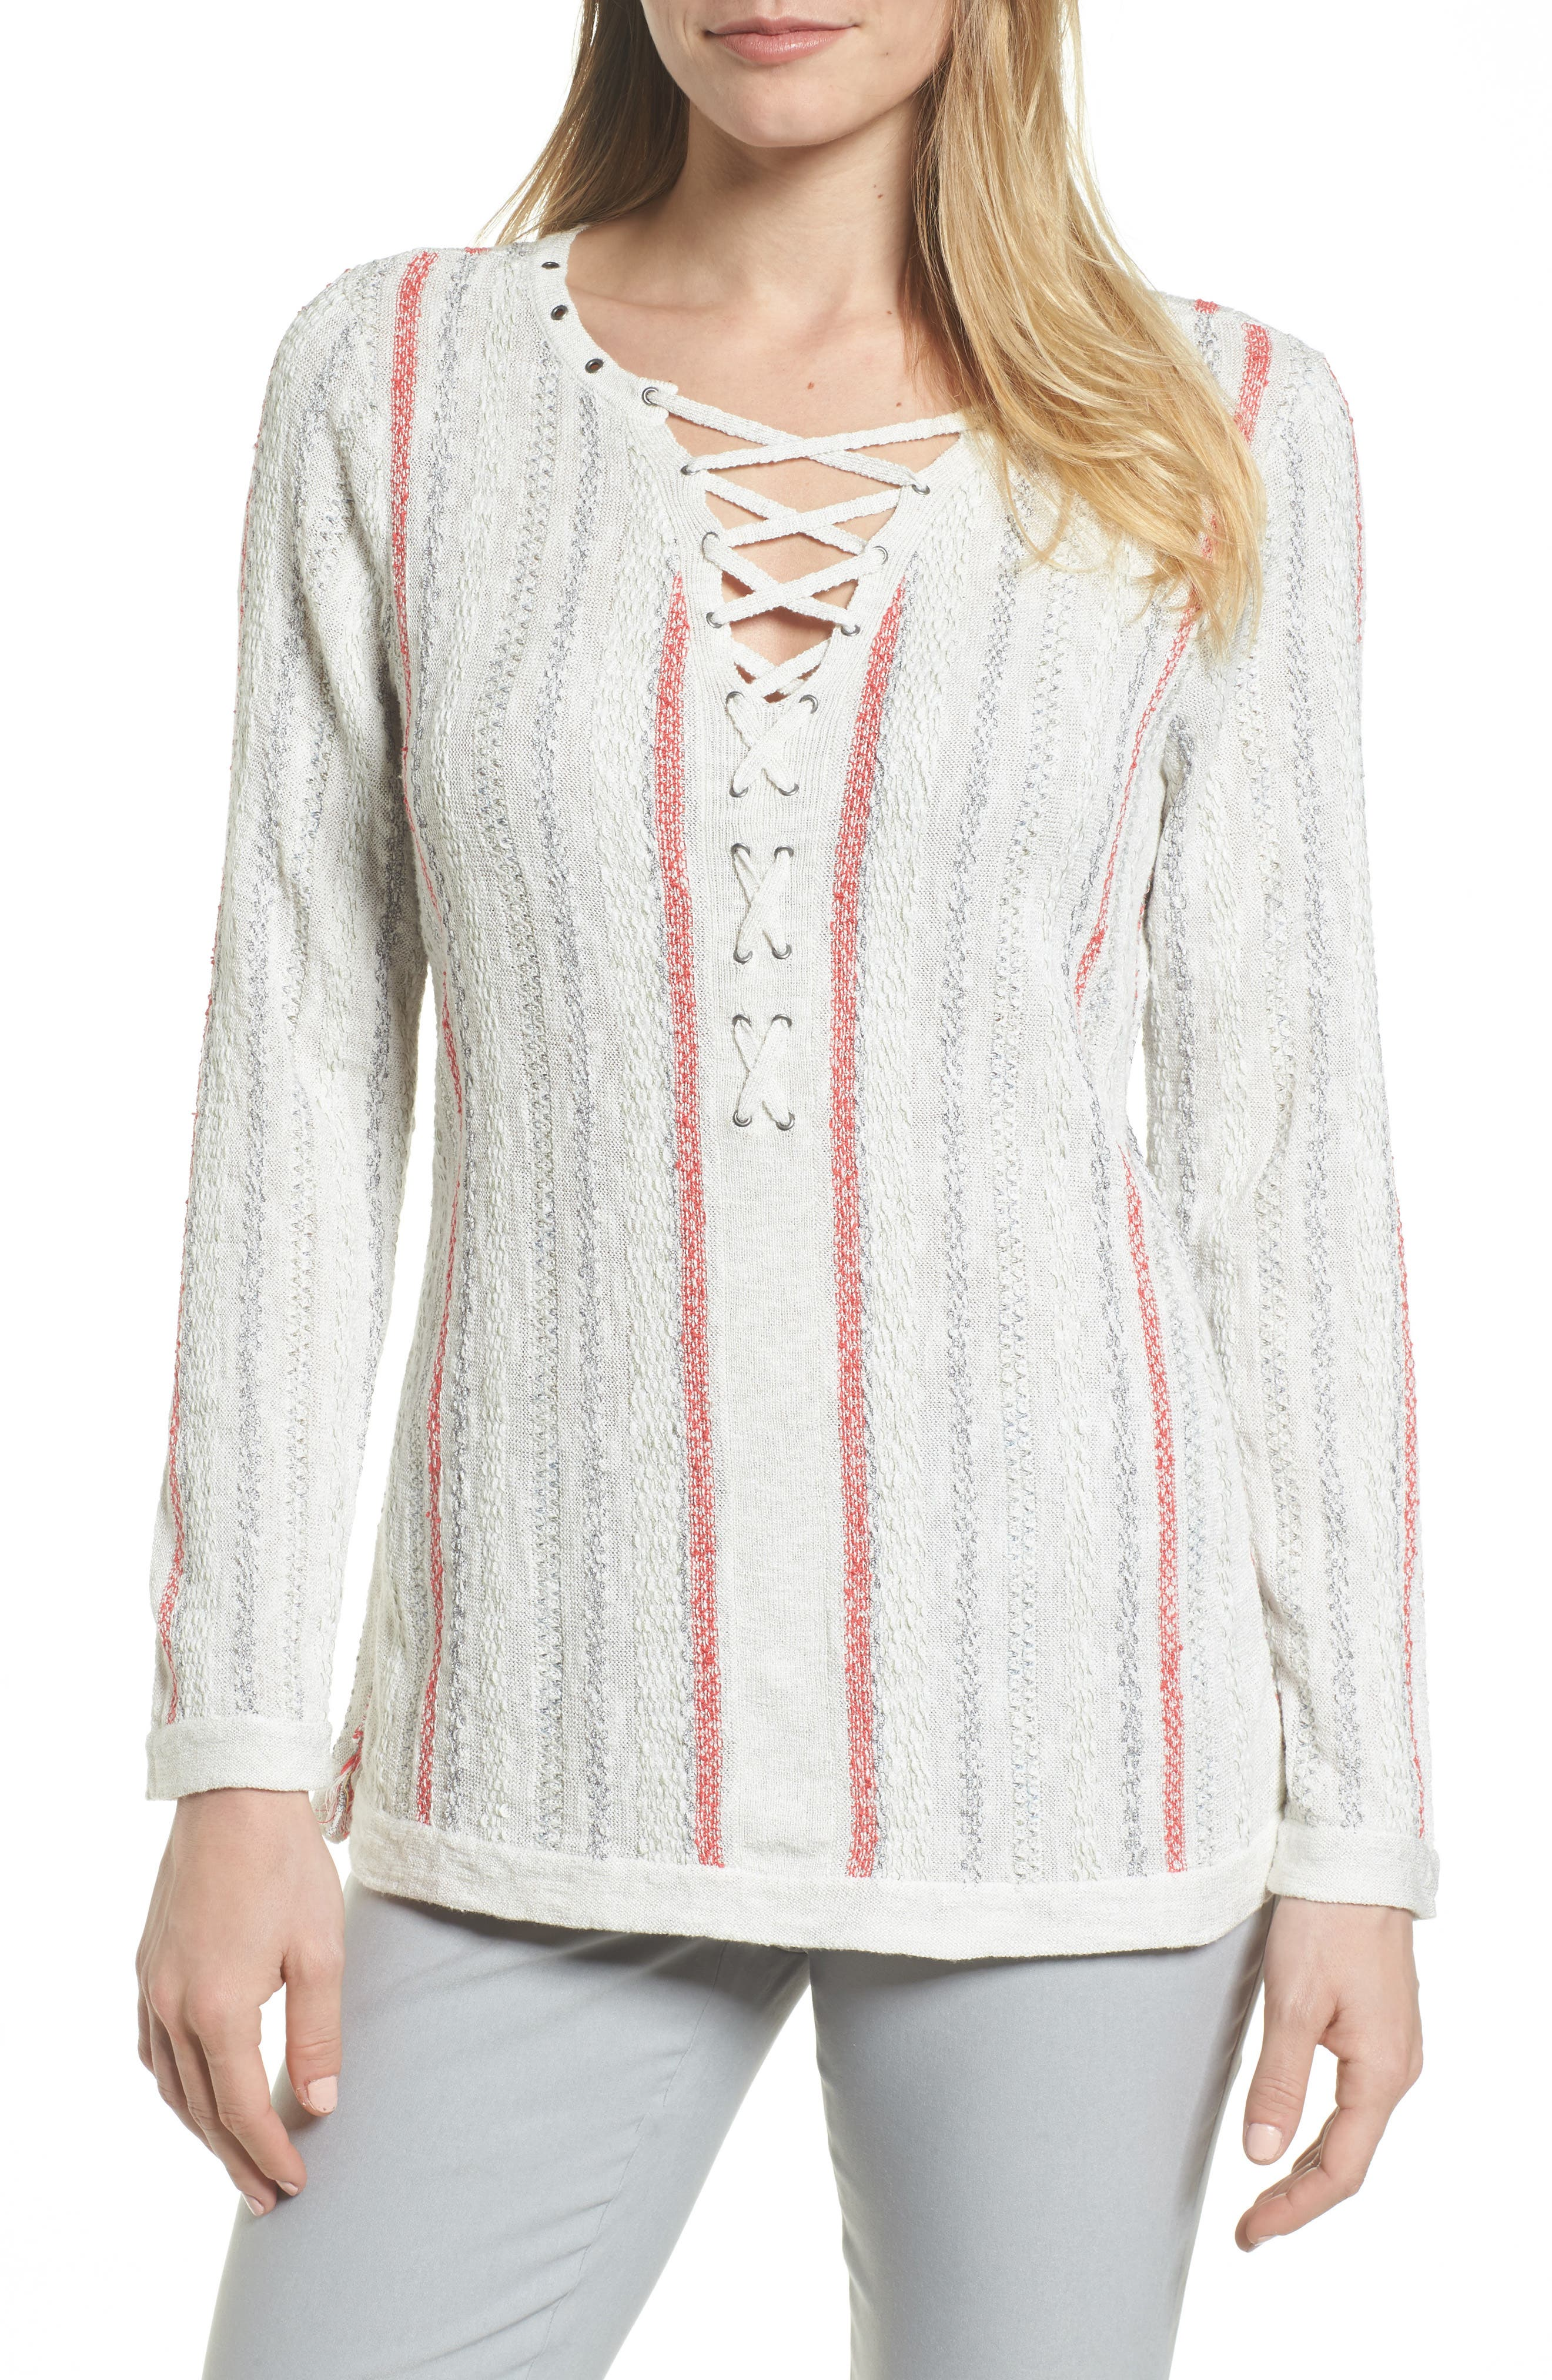 NIC + ZOE Cross Country Lace-Up Top,                         Main,                         color, 290